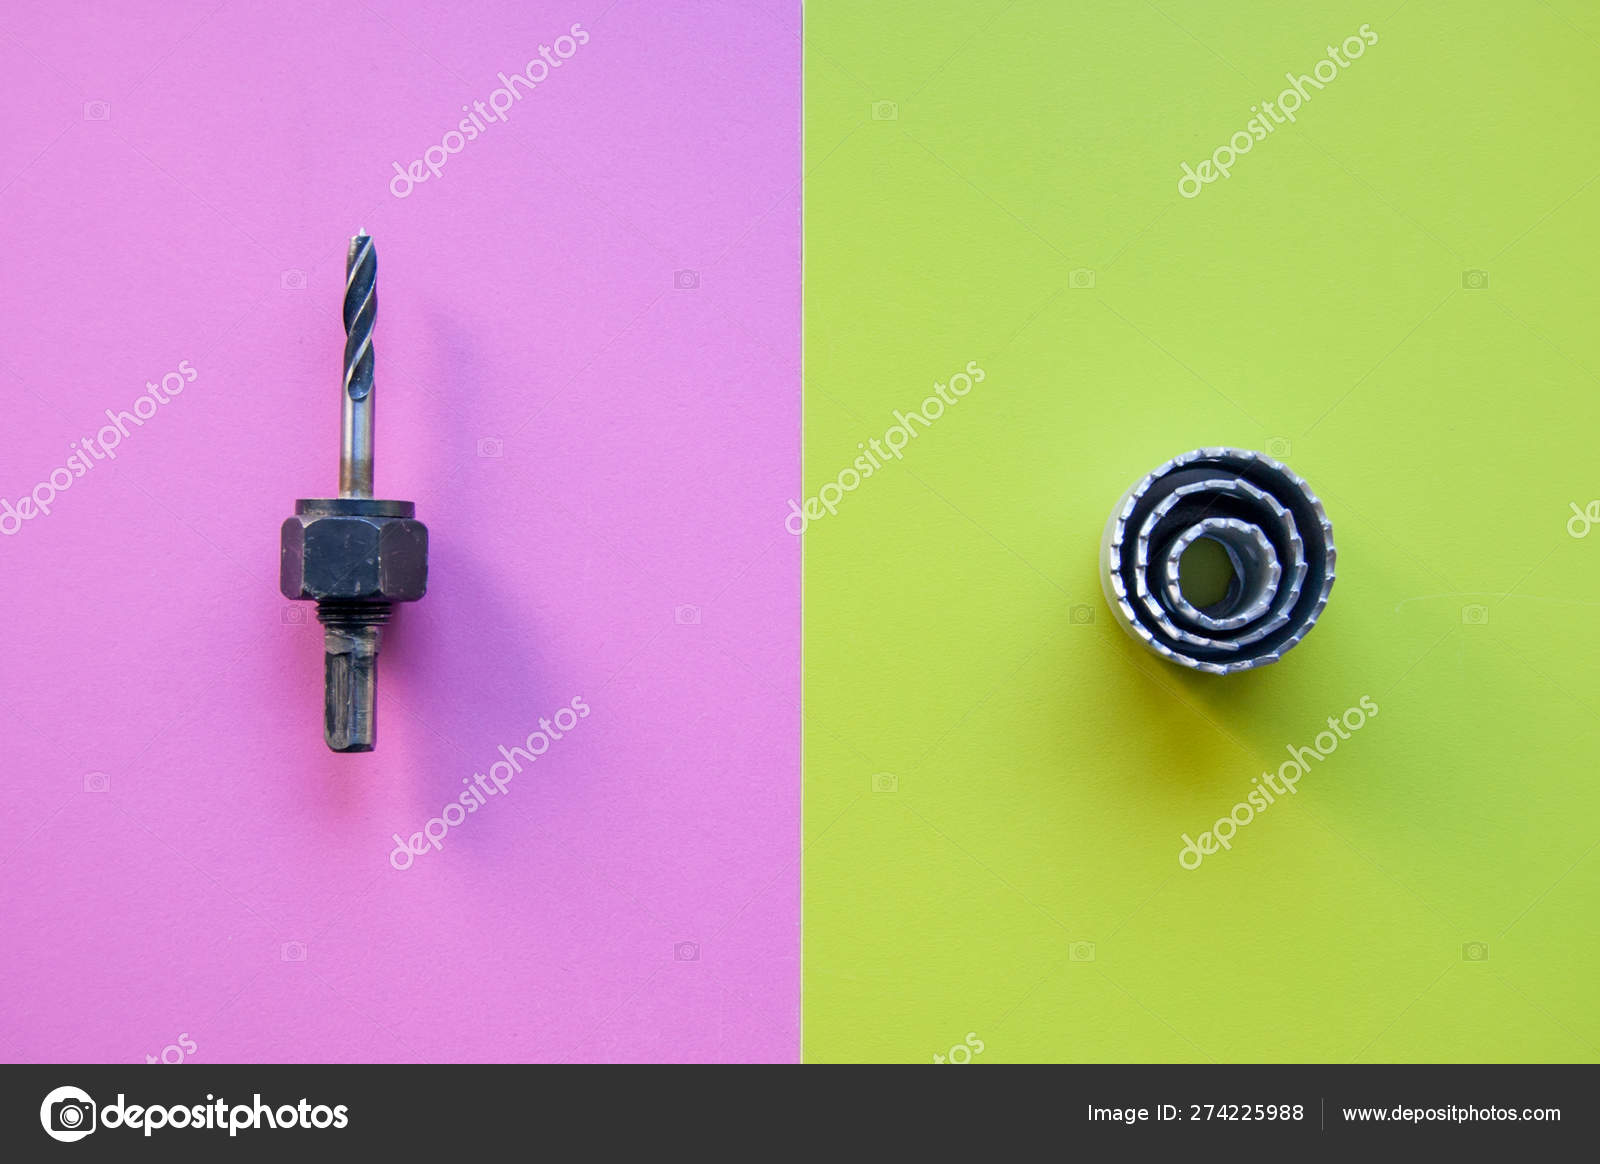 drill bit and crown on pink and lime color background